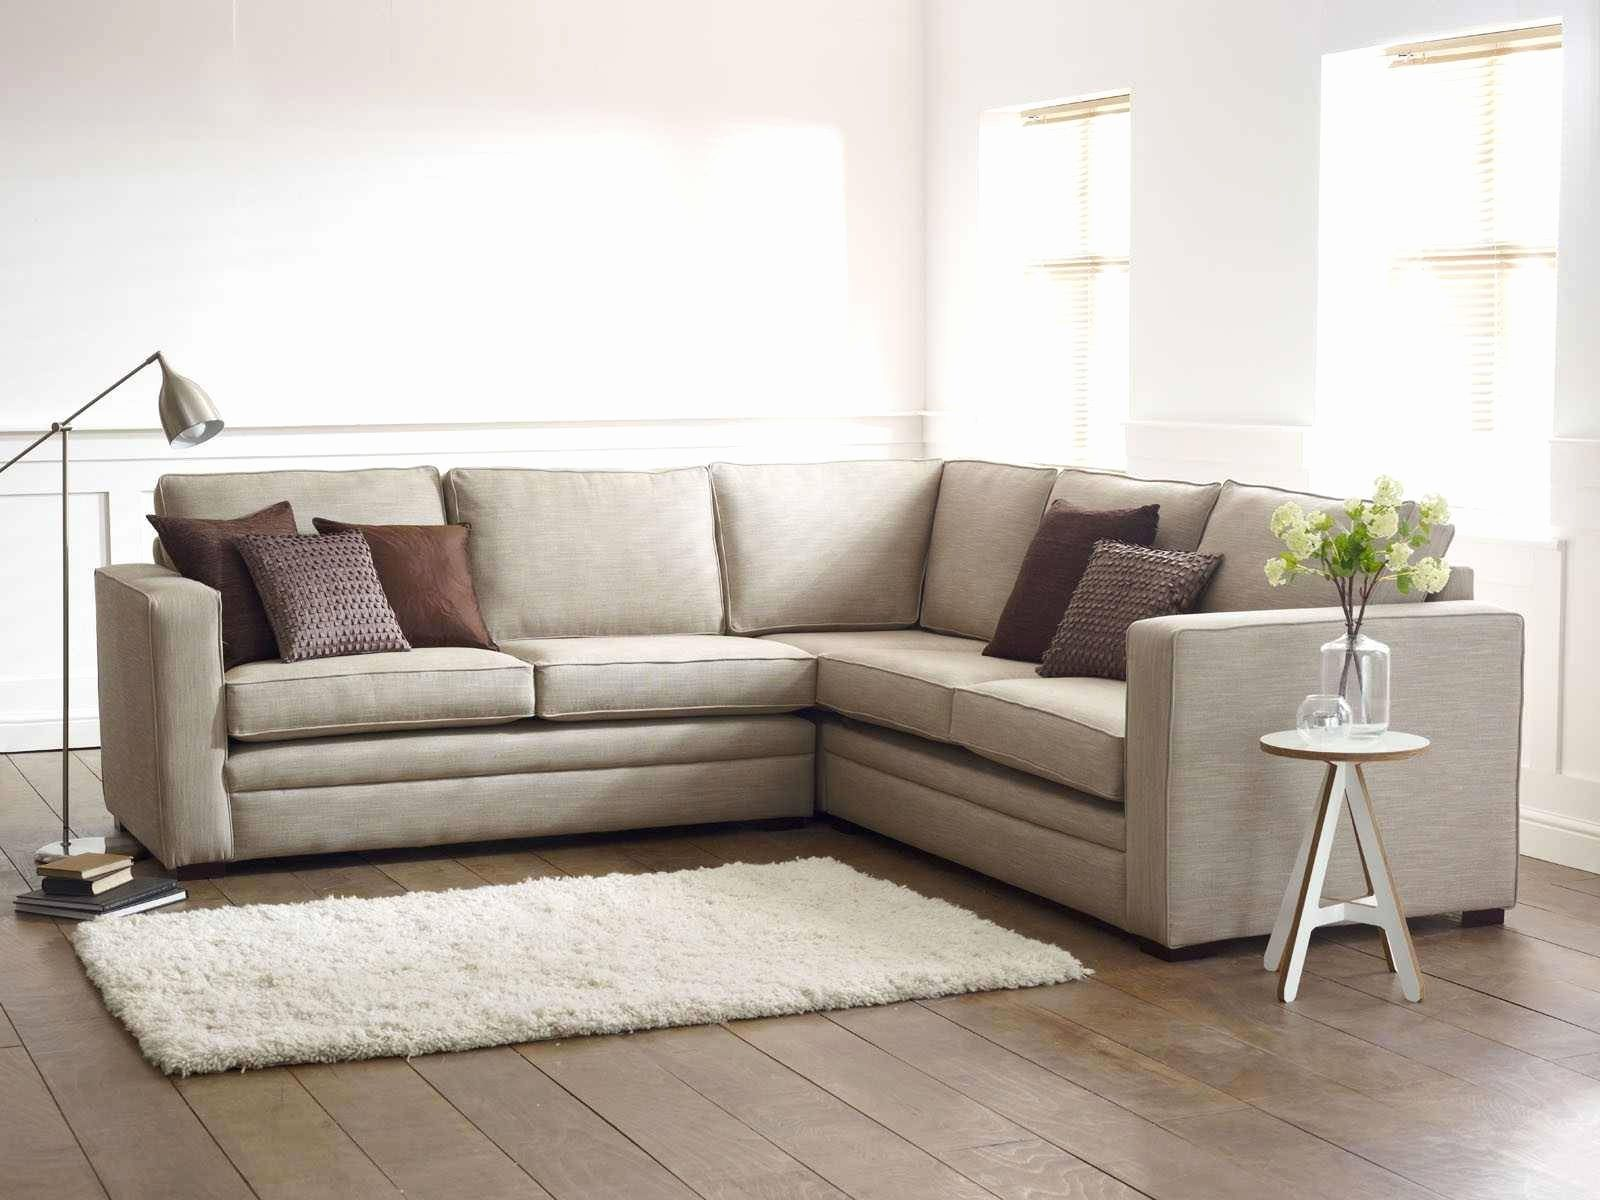 Modern Luxury Sectional Sofas Luxury Small Modern Sectional Sofas Photographs Small